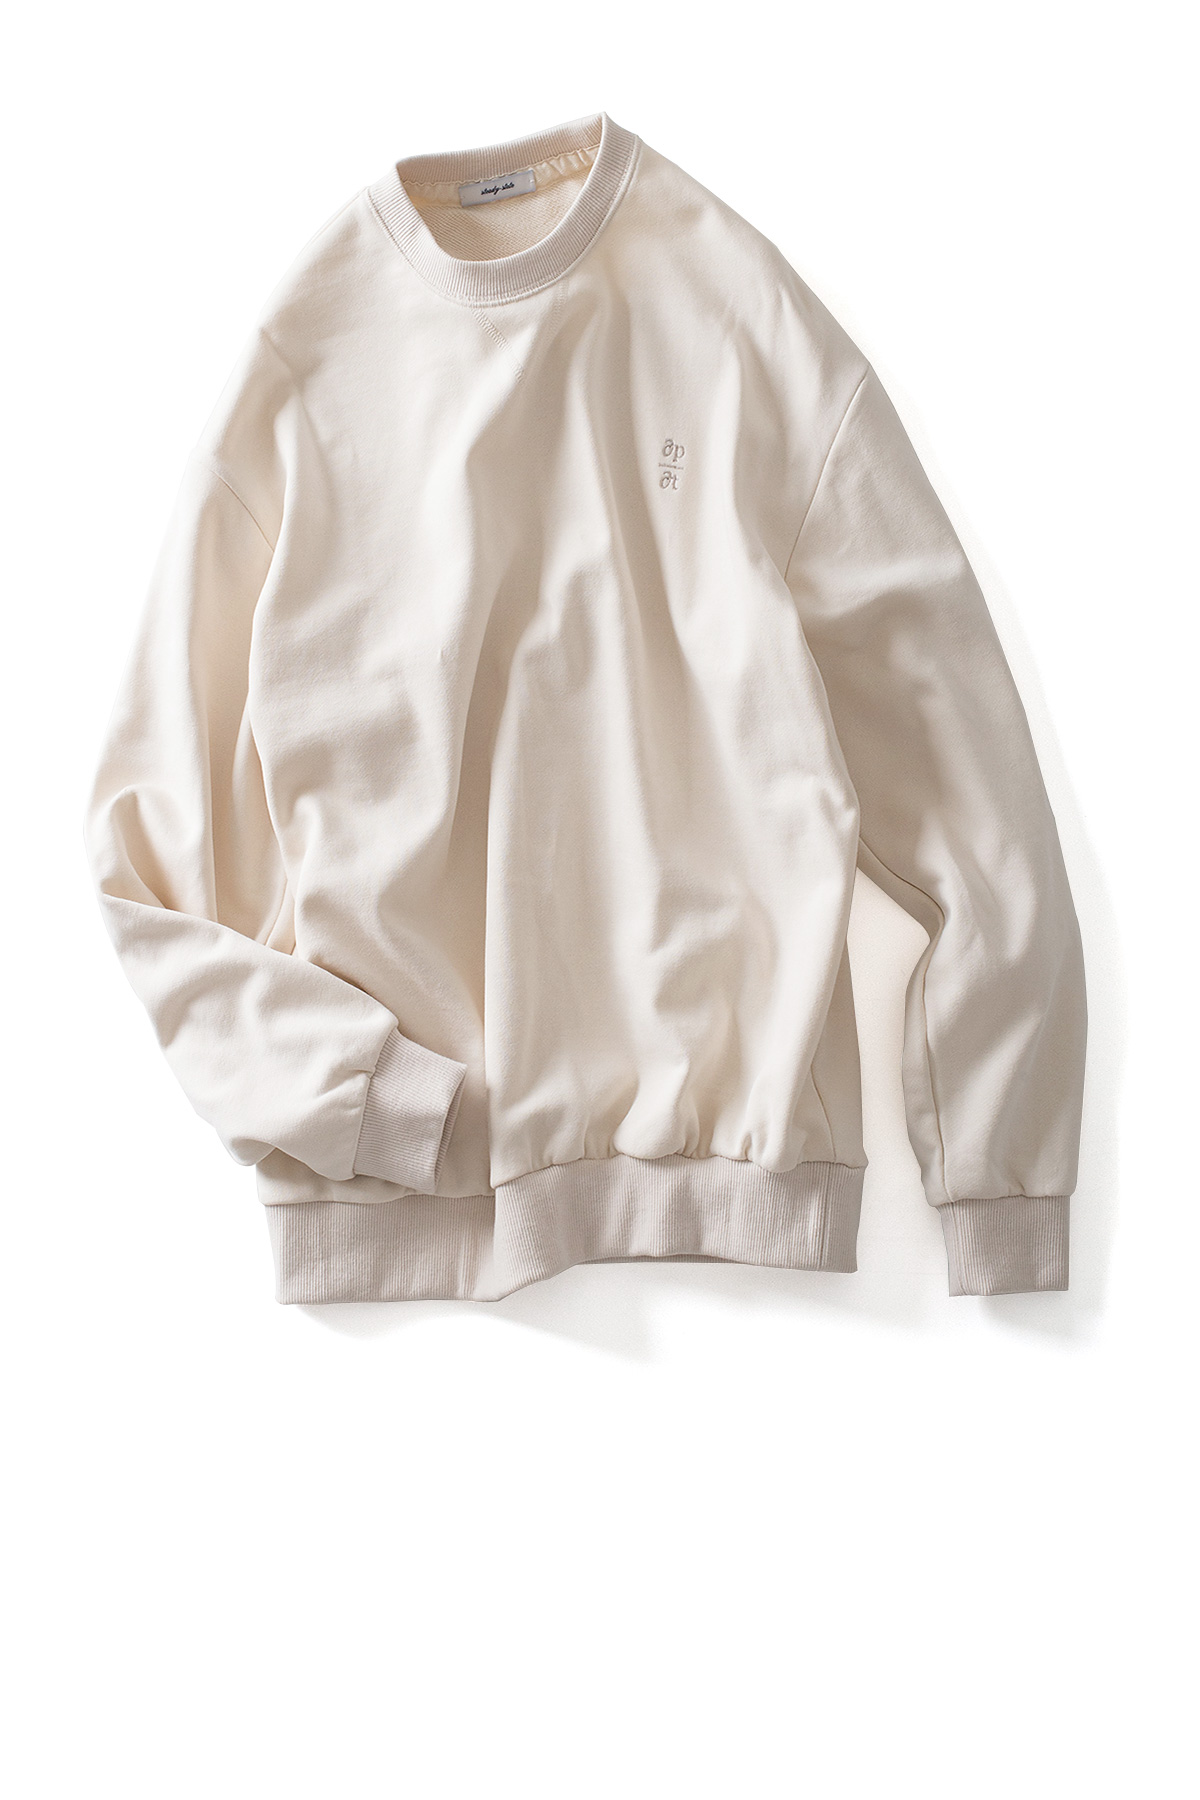 steady state : Sweatshirt (Ivory)